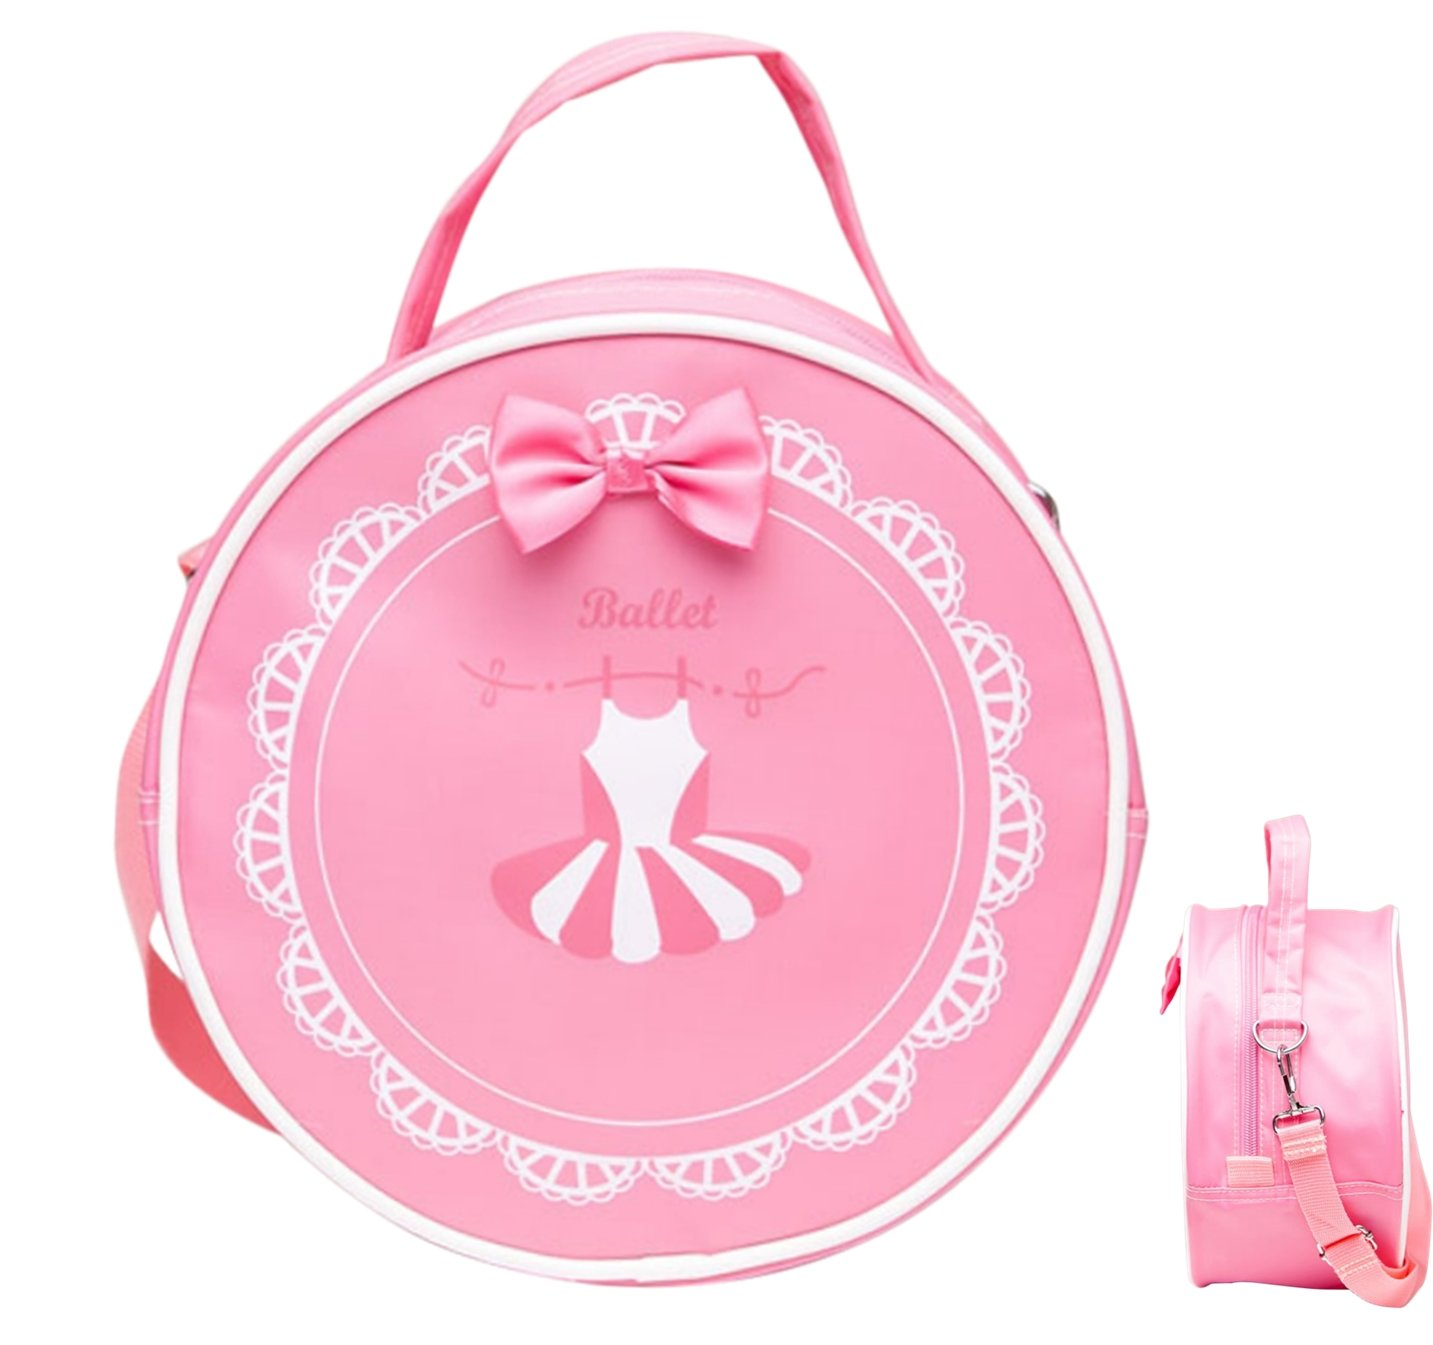 Girl's Dance Bag Shoulder Cross body Bag (Tutu Round Bag)